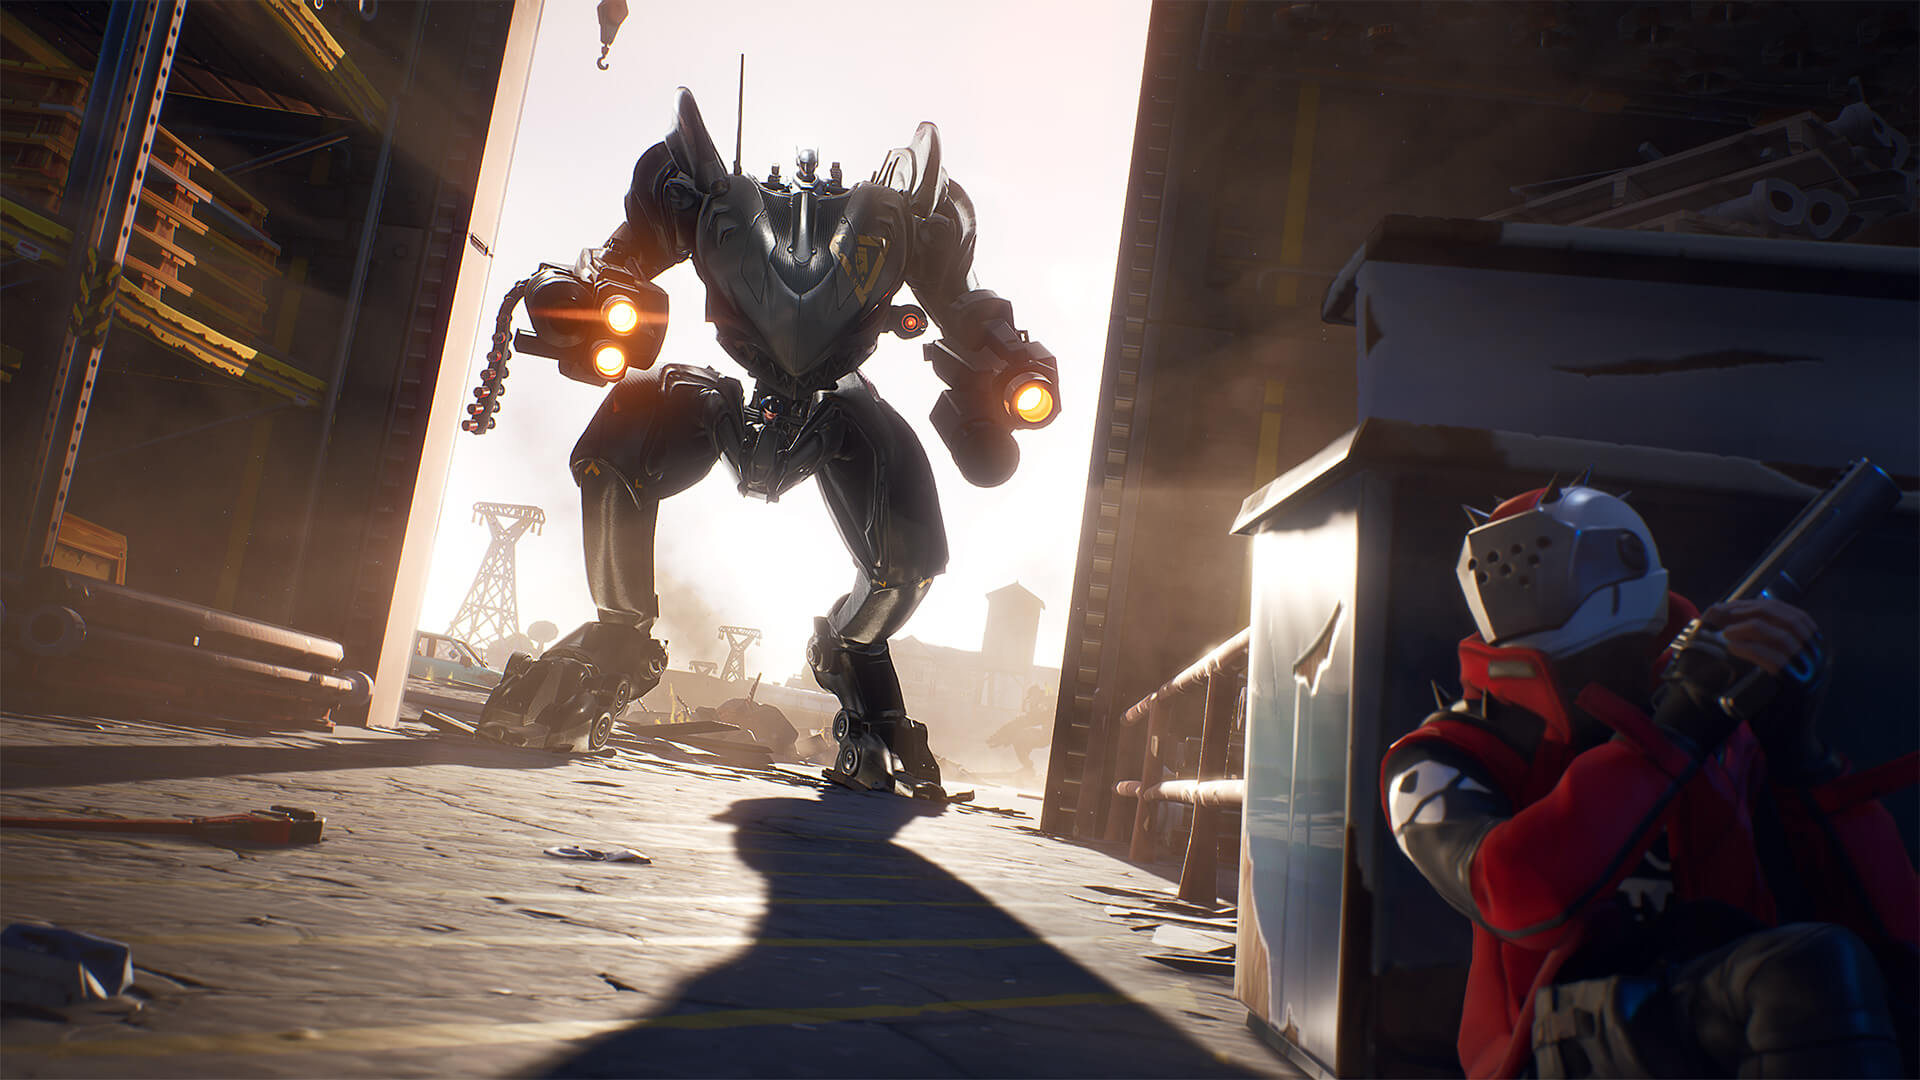 Mechs Are The Latest Shiny Toy Shaking Up Fortnite's Players